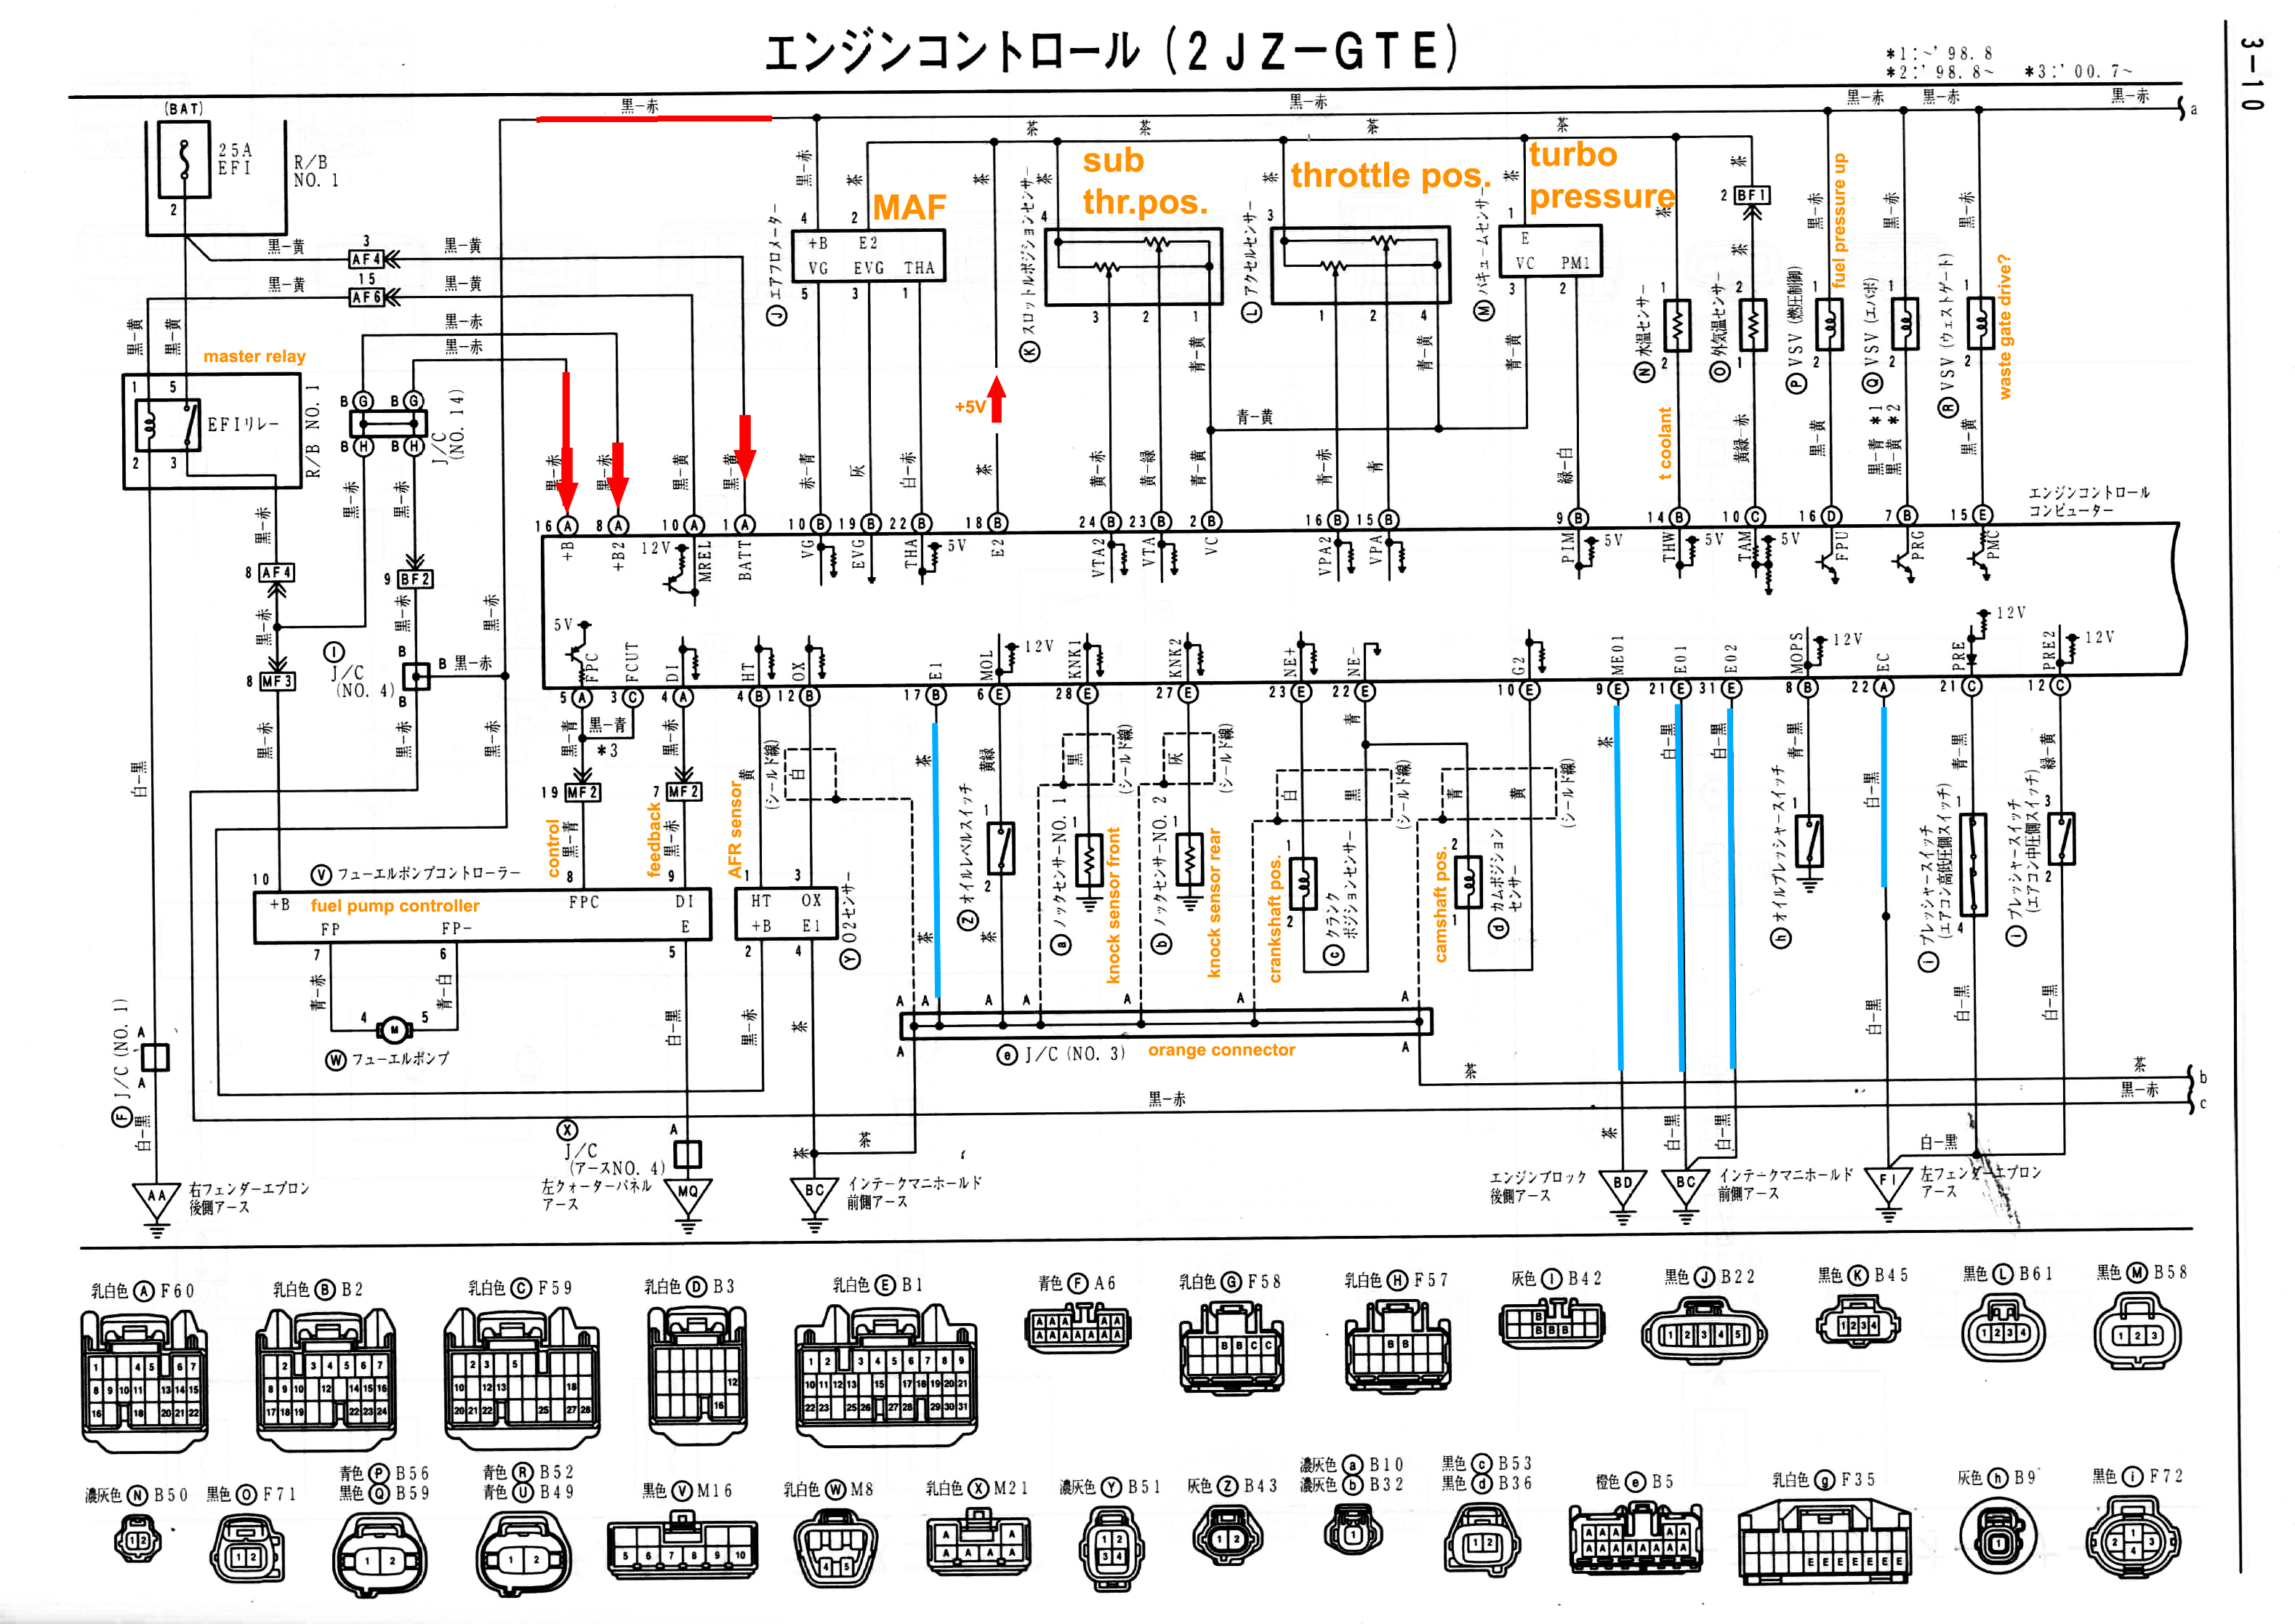 Toyota 1jz Wiring Diagram likewise 1jz Vvti Wiring Diagram Pdf likewise 1uzfe Wiring Diagram Pdf further Supra 2jzge Wiring moreover 90 Accord Fuse Box Diagram. on 1jz vvti ecu wiring diagram